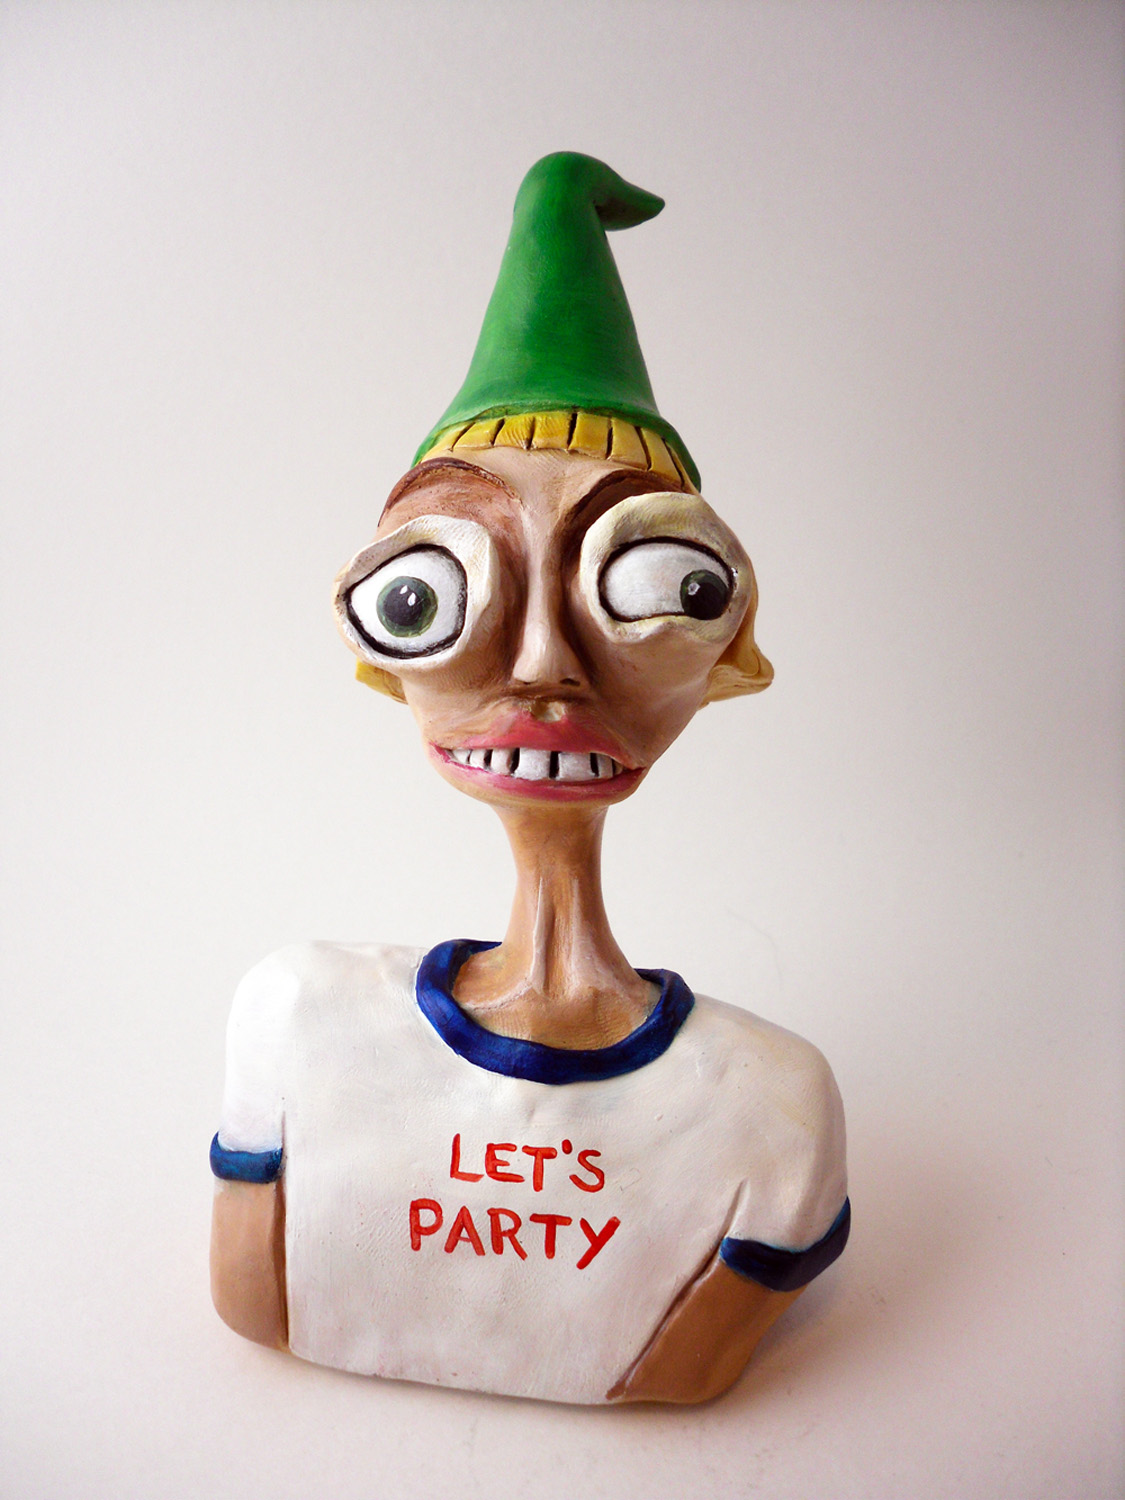 Pete is for Party